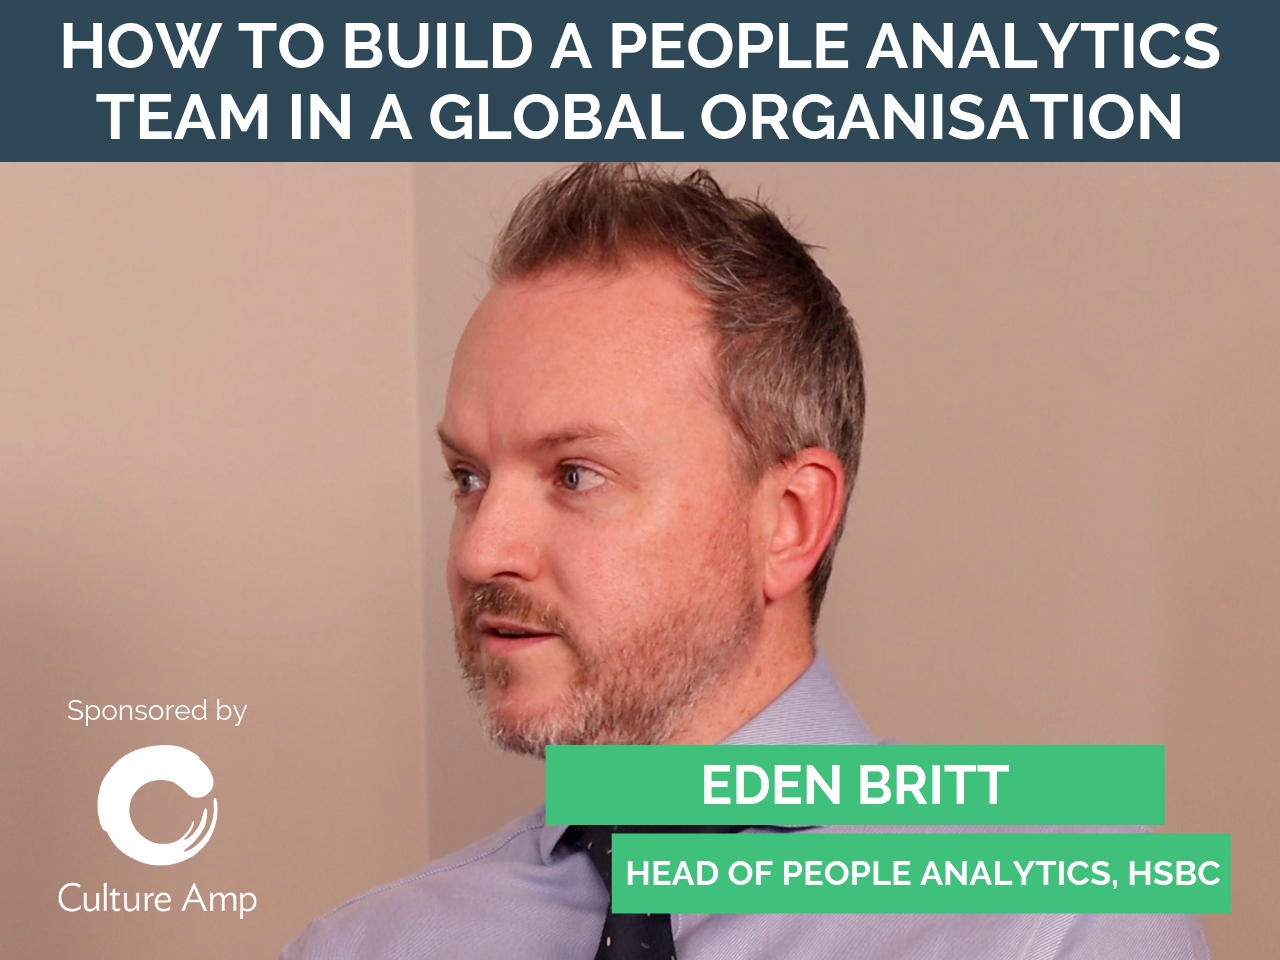 Episode 5: How to Build a People Analytics Team in a Global